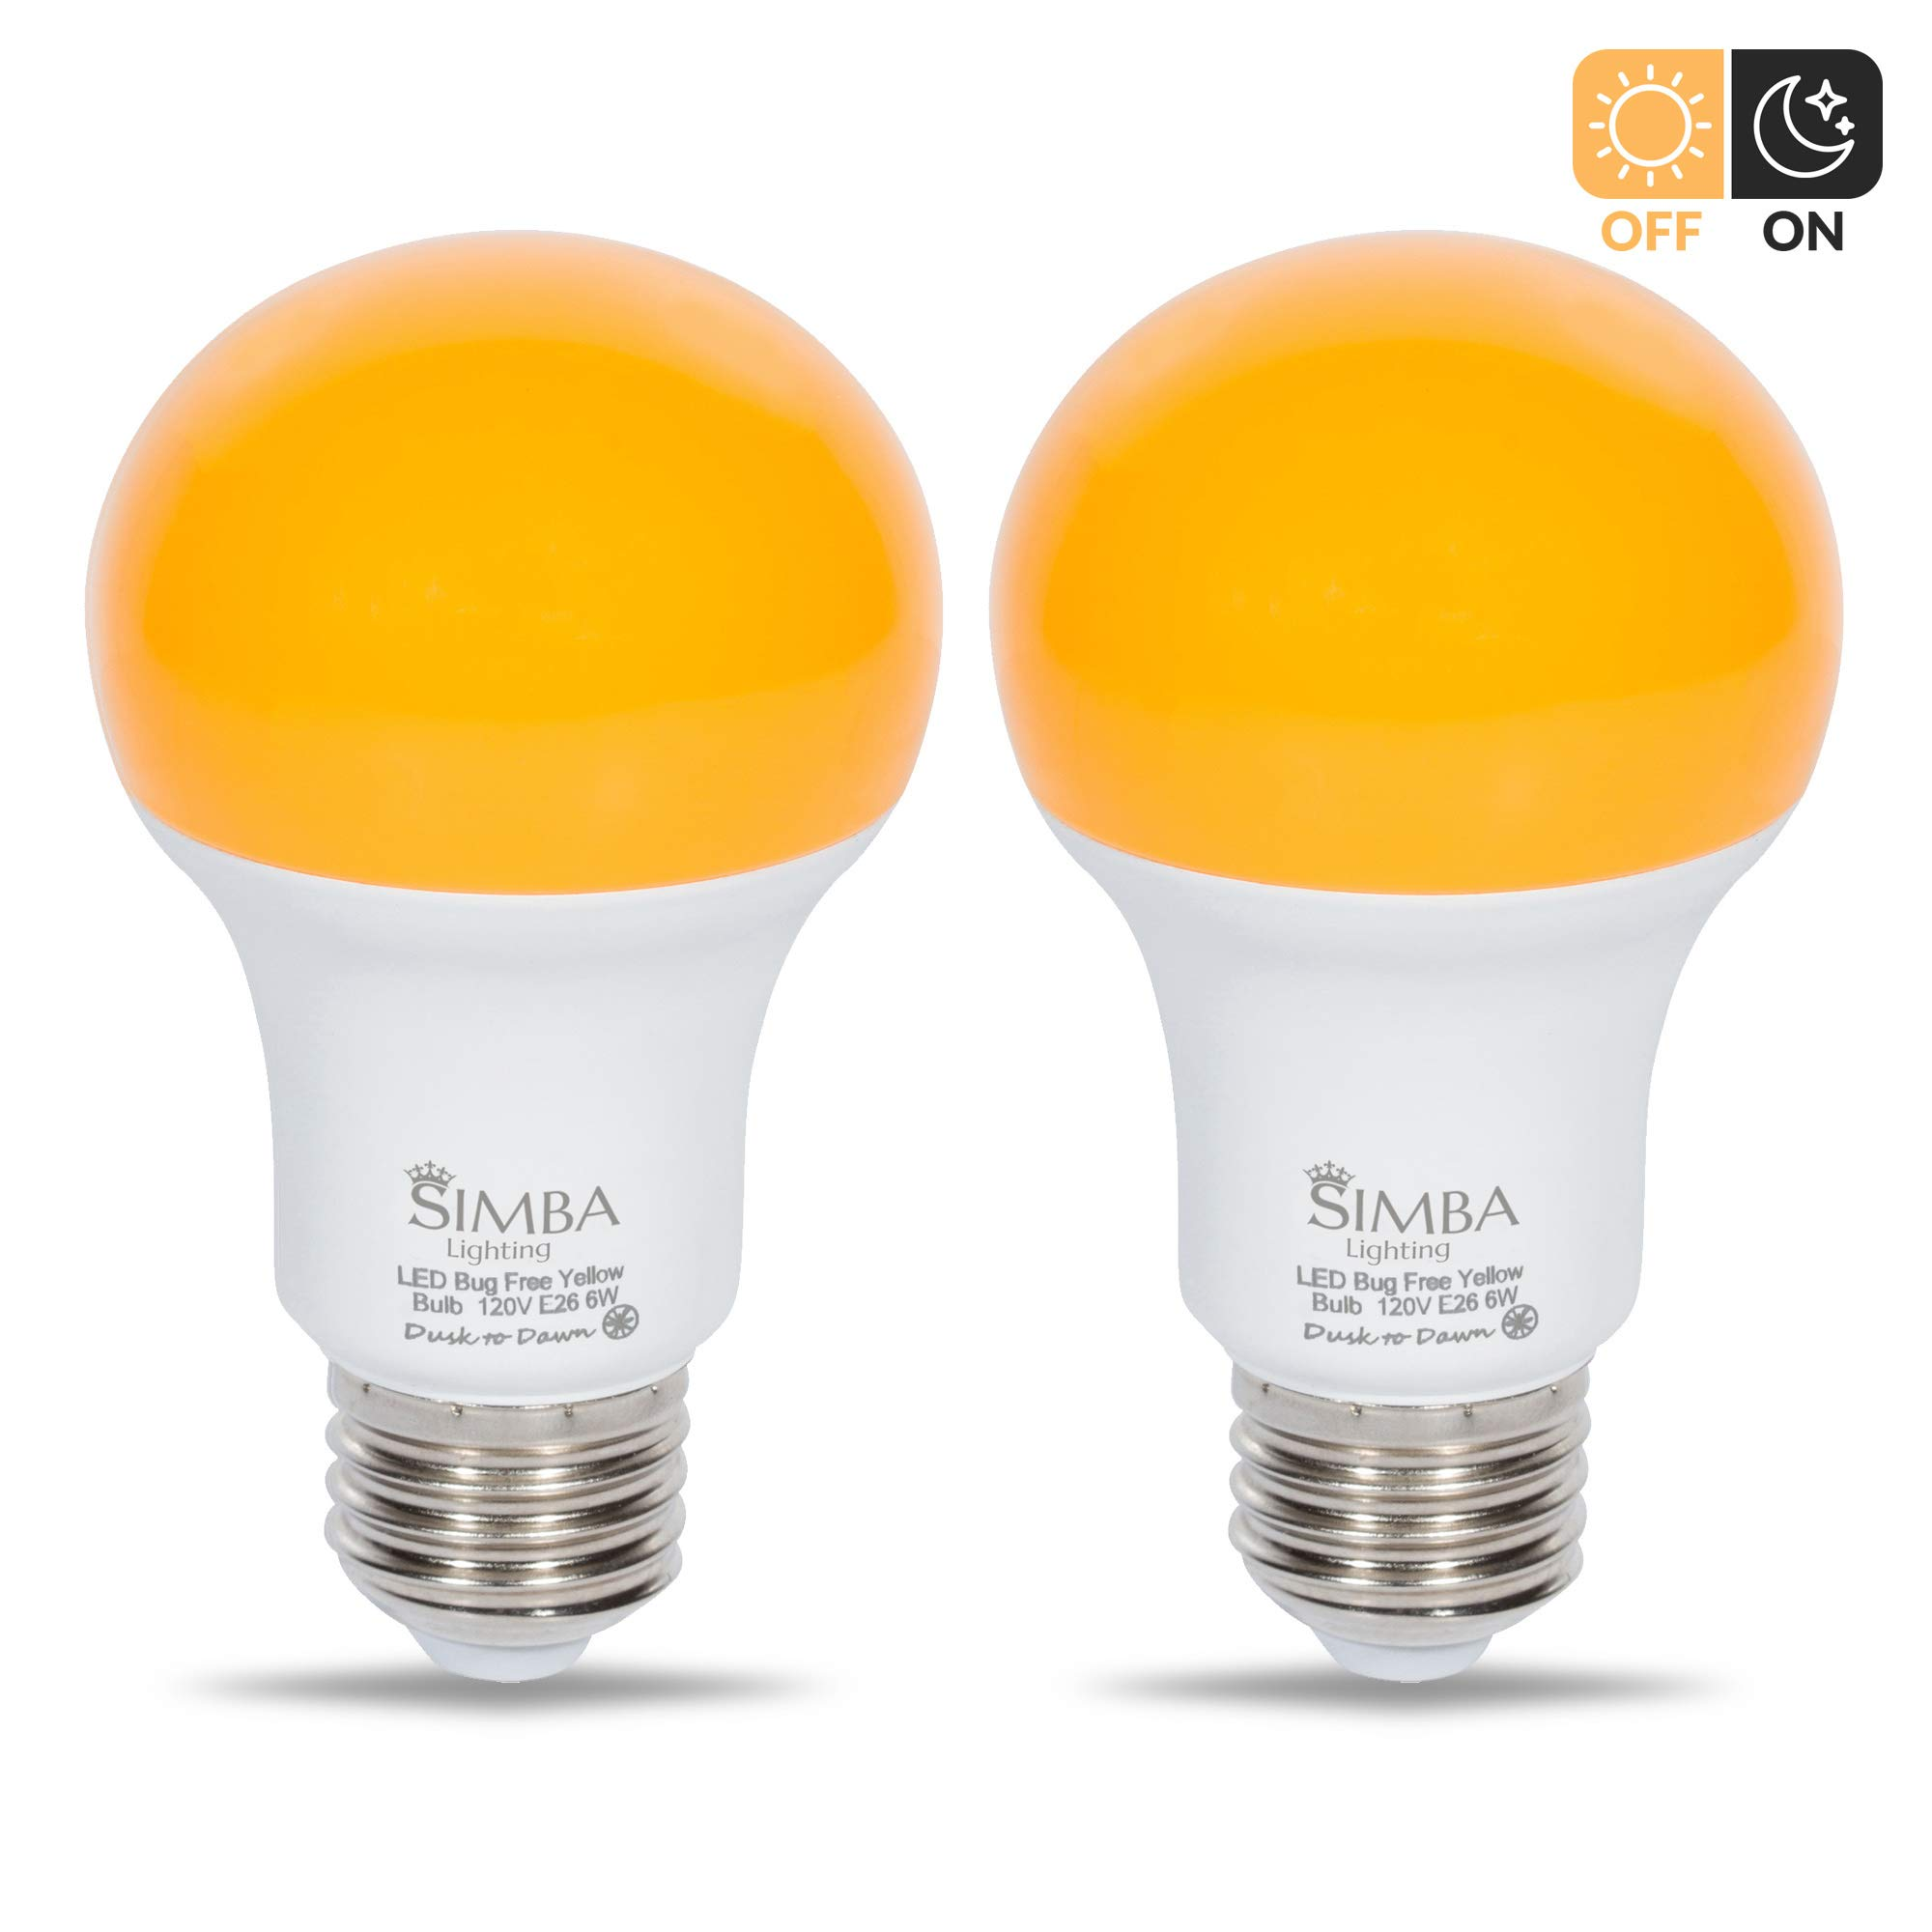 Simba Lighting Bug Repellent Yellow LED Bulb 6W 40W Equivalent, Great for Outdoor Porch Light, Night Light, Dusk-to-Dawn Smart Sensor Auto On/Off, Amber Warm 2000K, A19 E26 Medium Base, Pack of 2